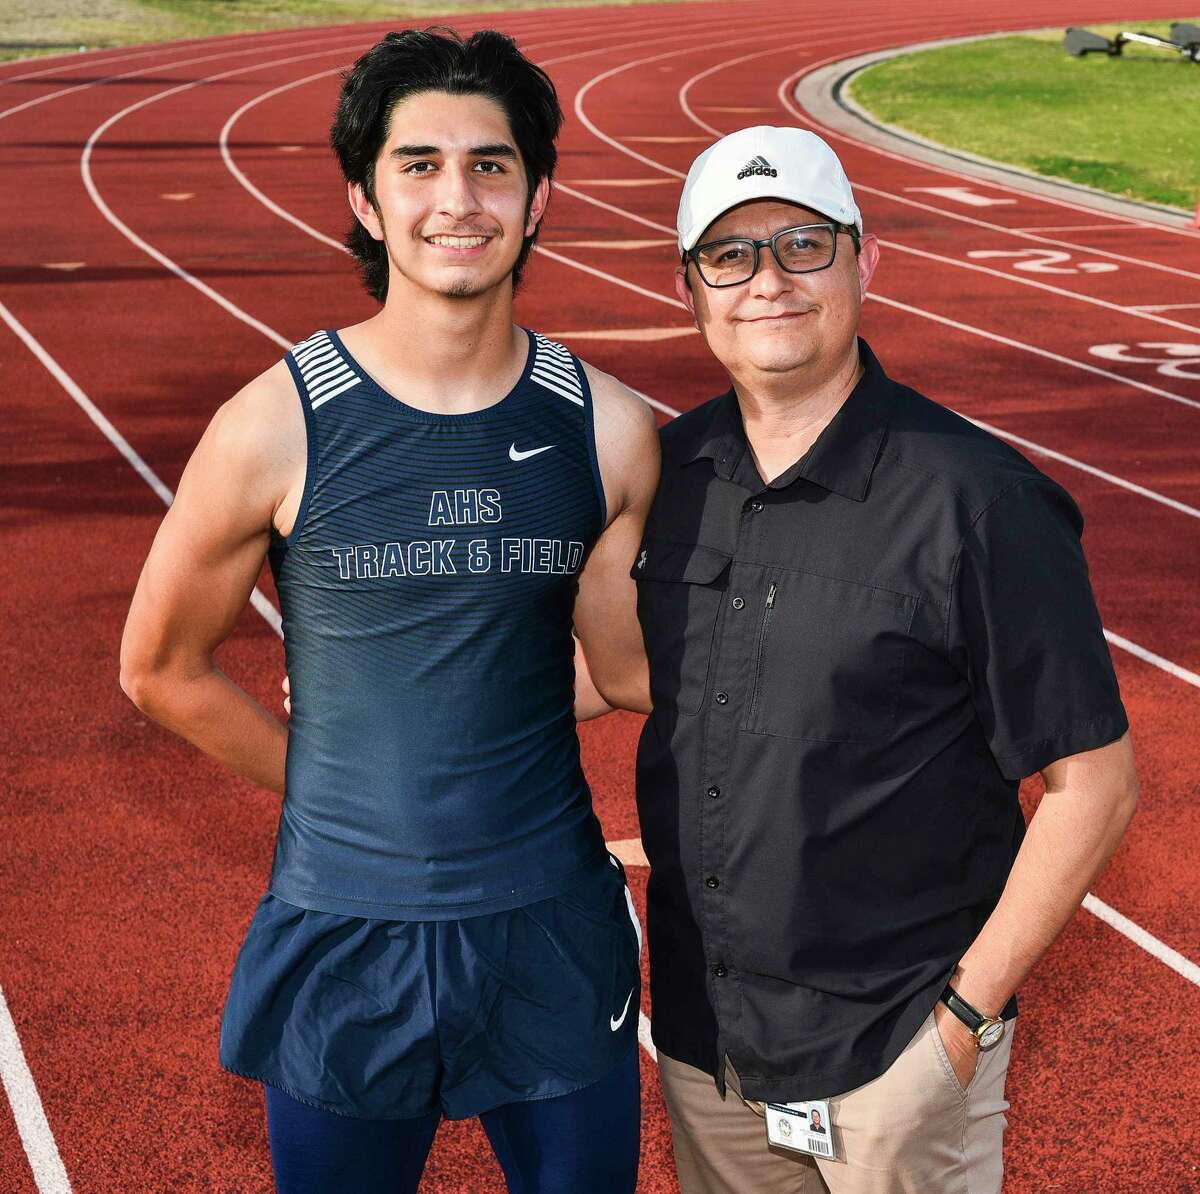 Aquiles Briones is competing in multiple hurdle events for Alexander and is following in the footsteps of his father Jose Briones by running in the 4x400-meter relay.